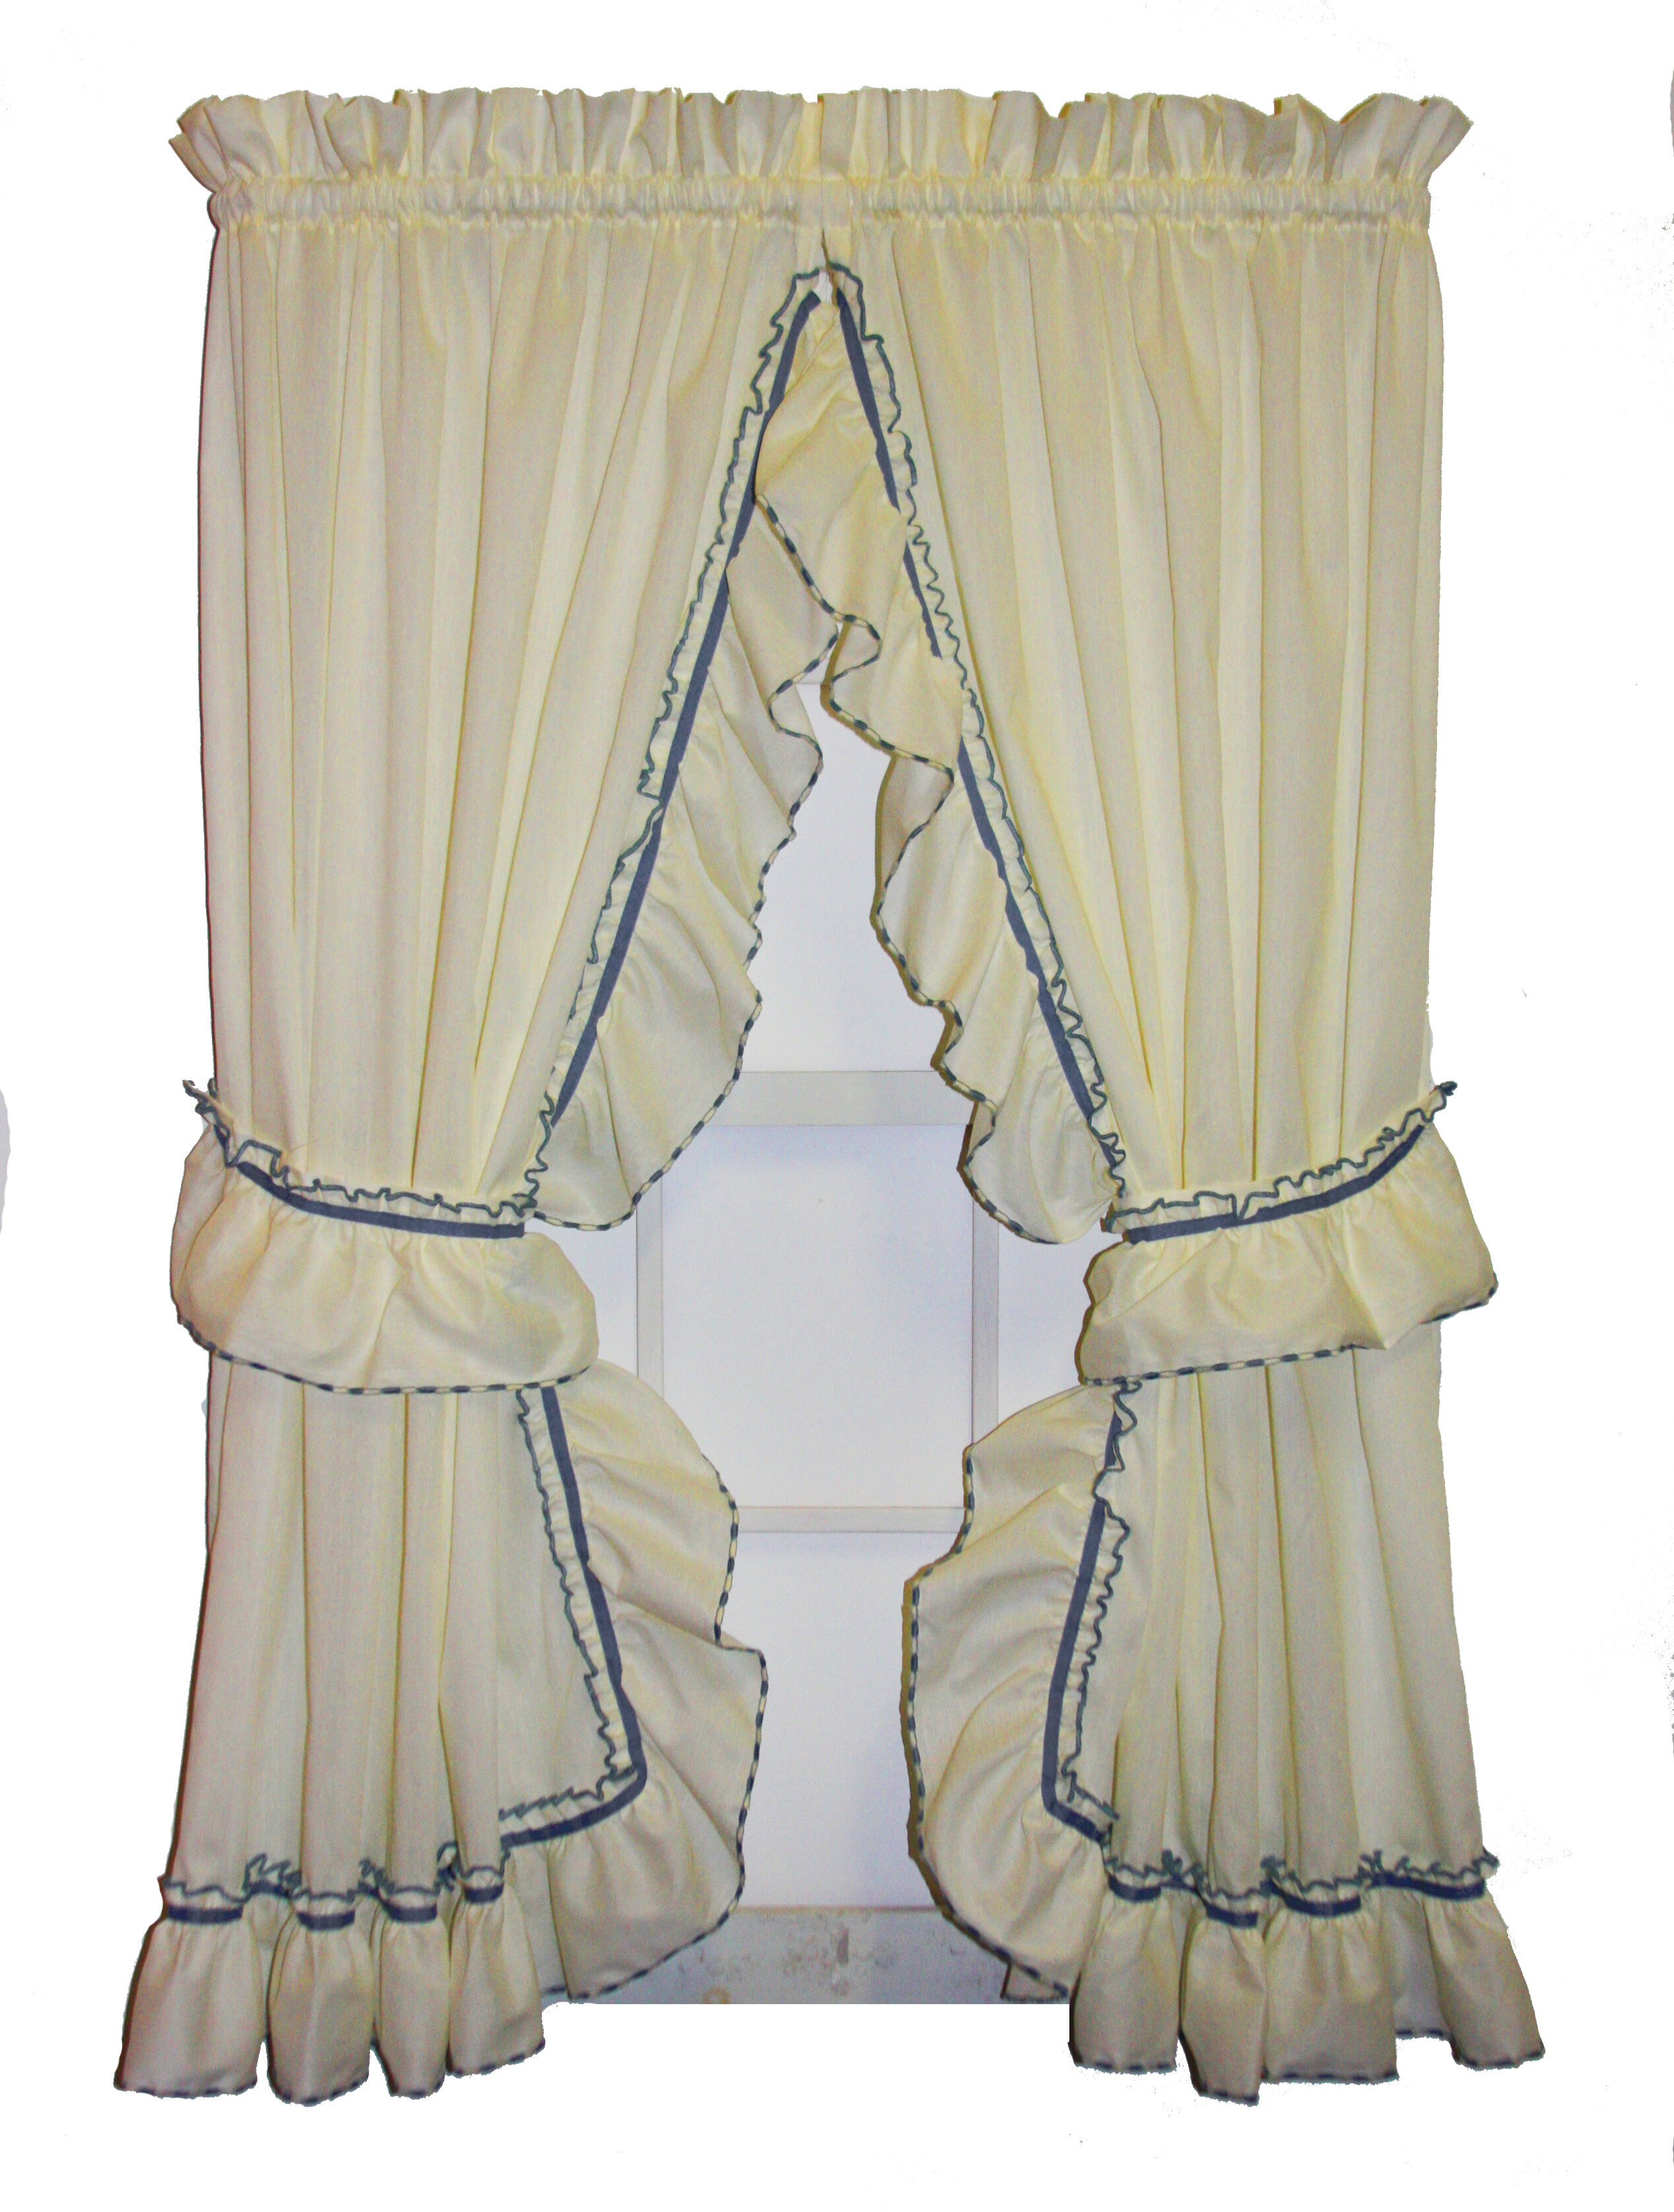 Hower Country Ruffled Priscilla Curtain Panels Pair For Lydia Ruffle Window Curtain Panel Pairs (View 9 of 20)